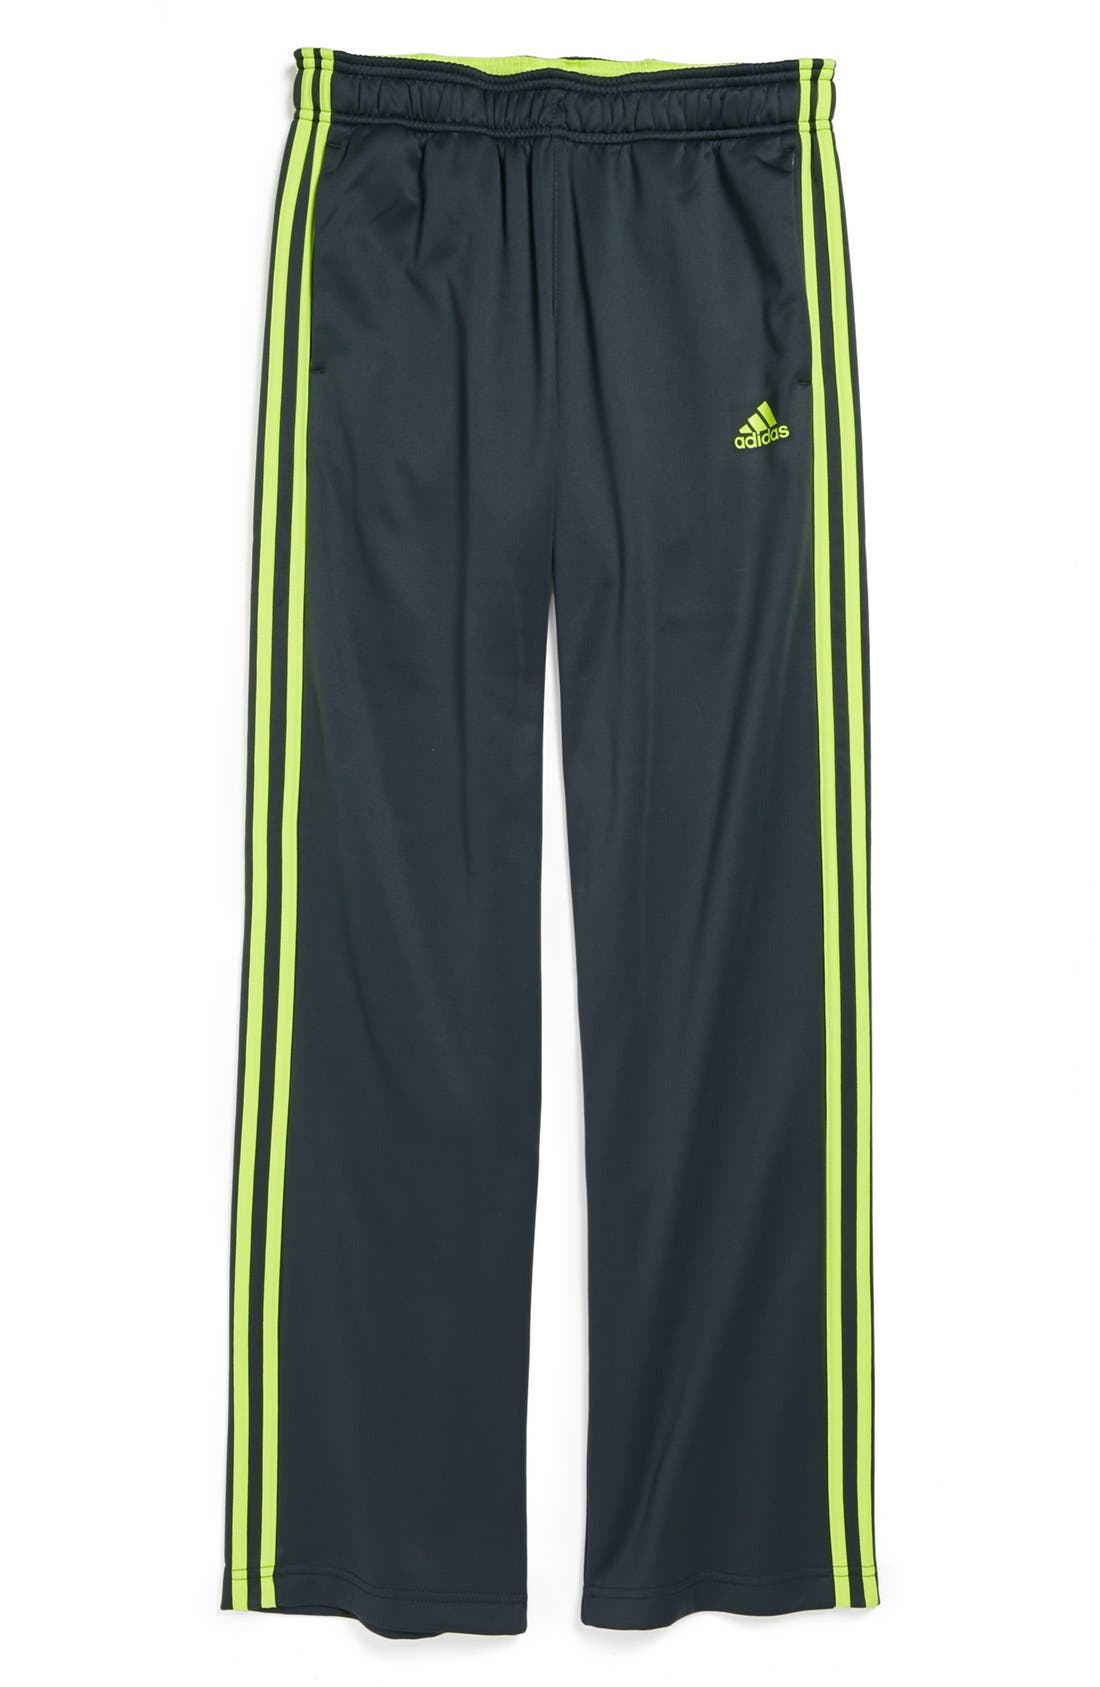 Main Image - adidas 'Ultimate' Track Pants (Big Boys)